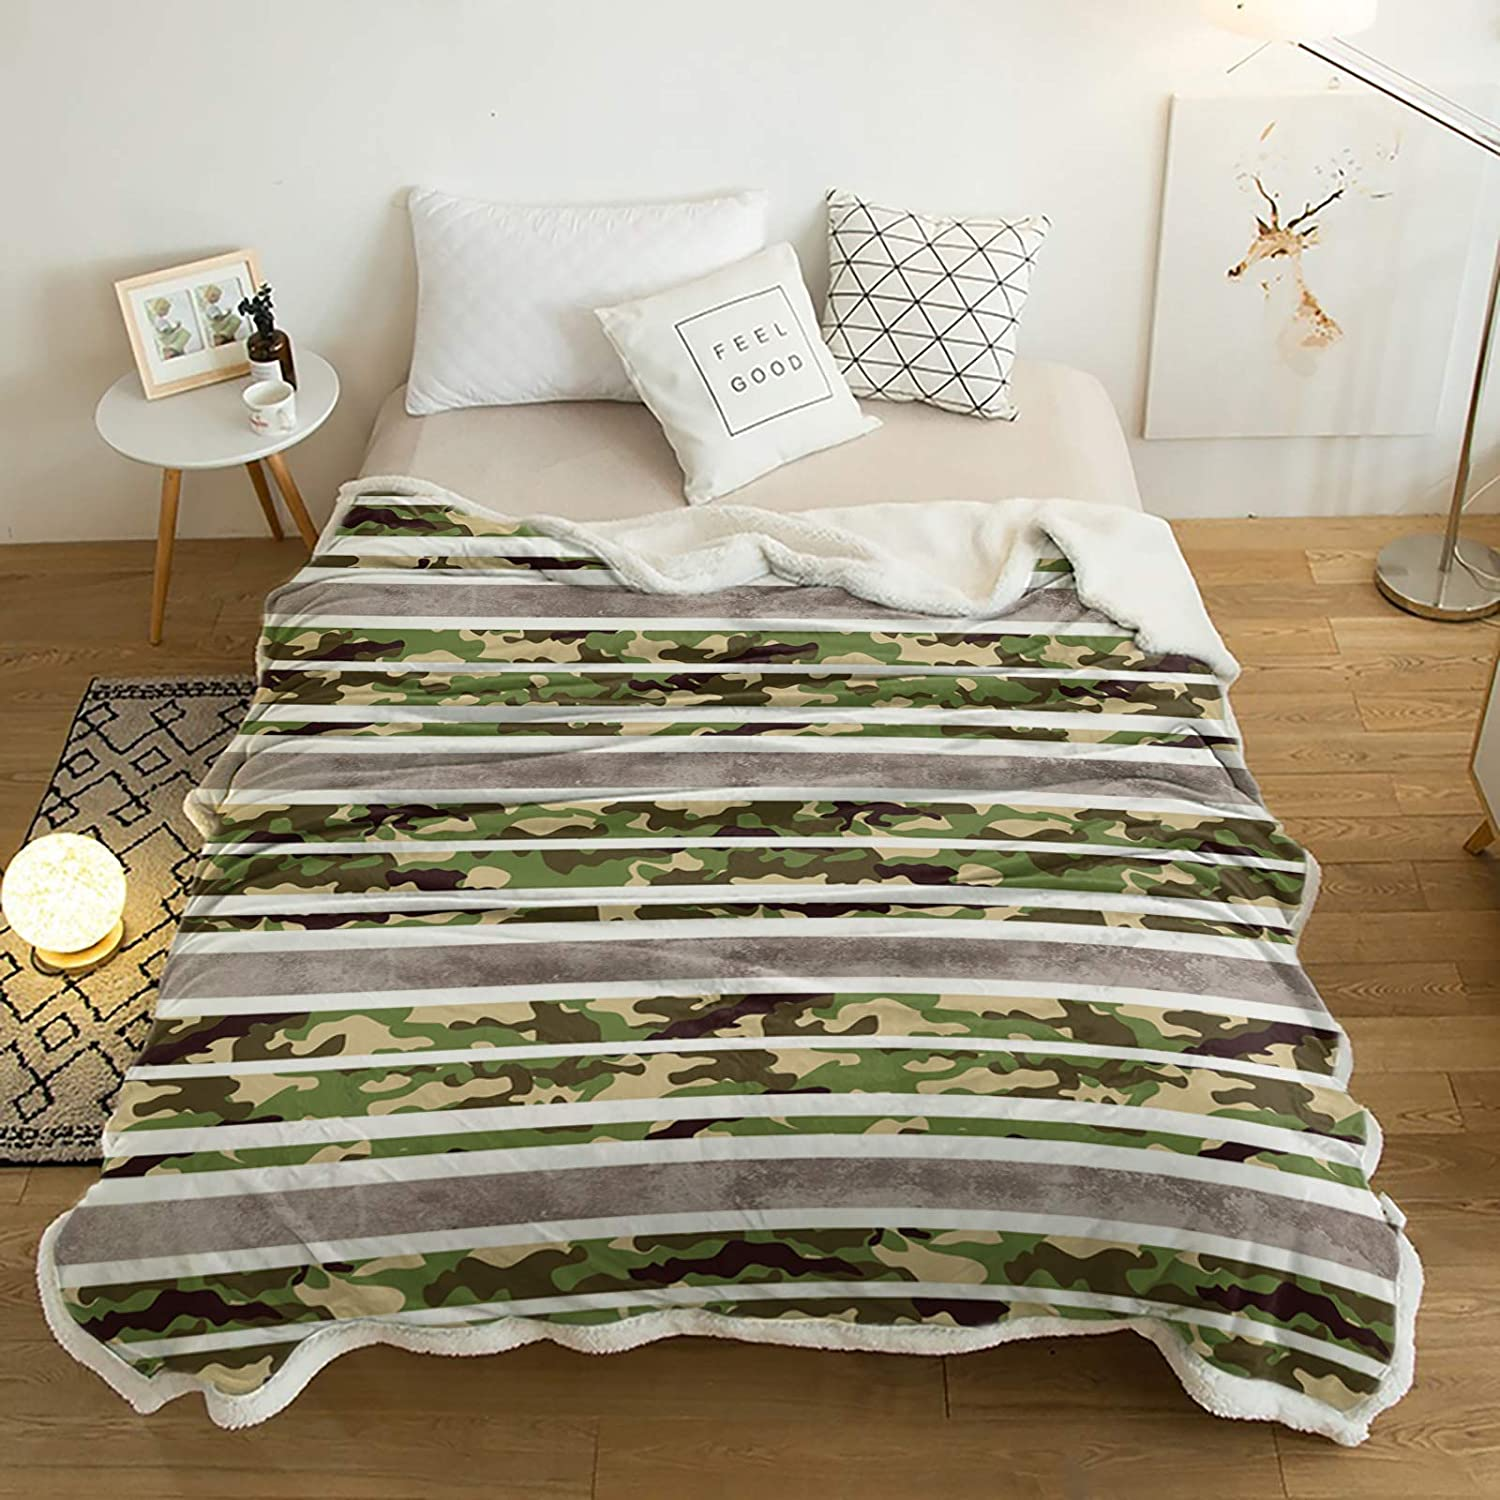 Sherpa Fleece Throw Blanket Art on Camouflage Military Indianapolis Mall R Max 69% OFF Stripes